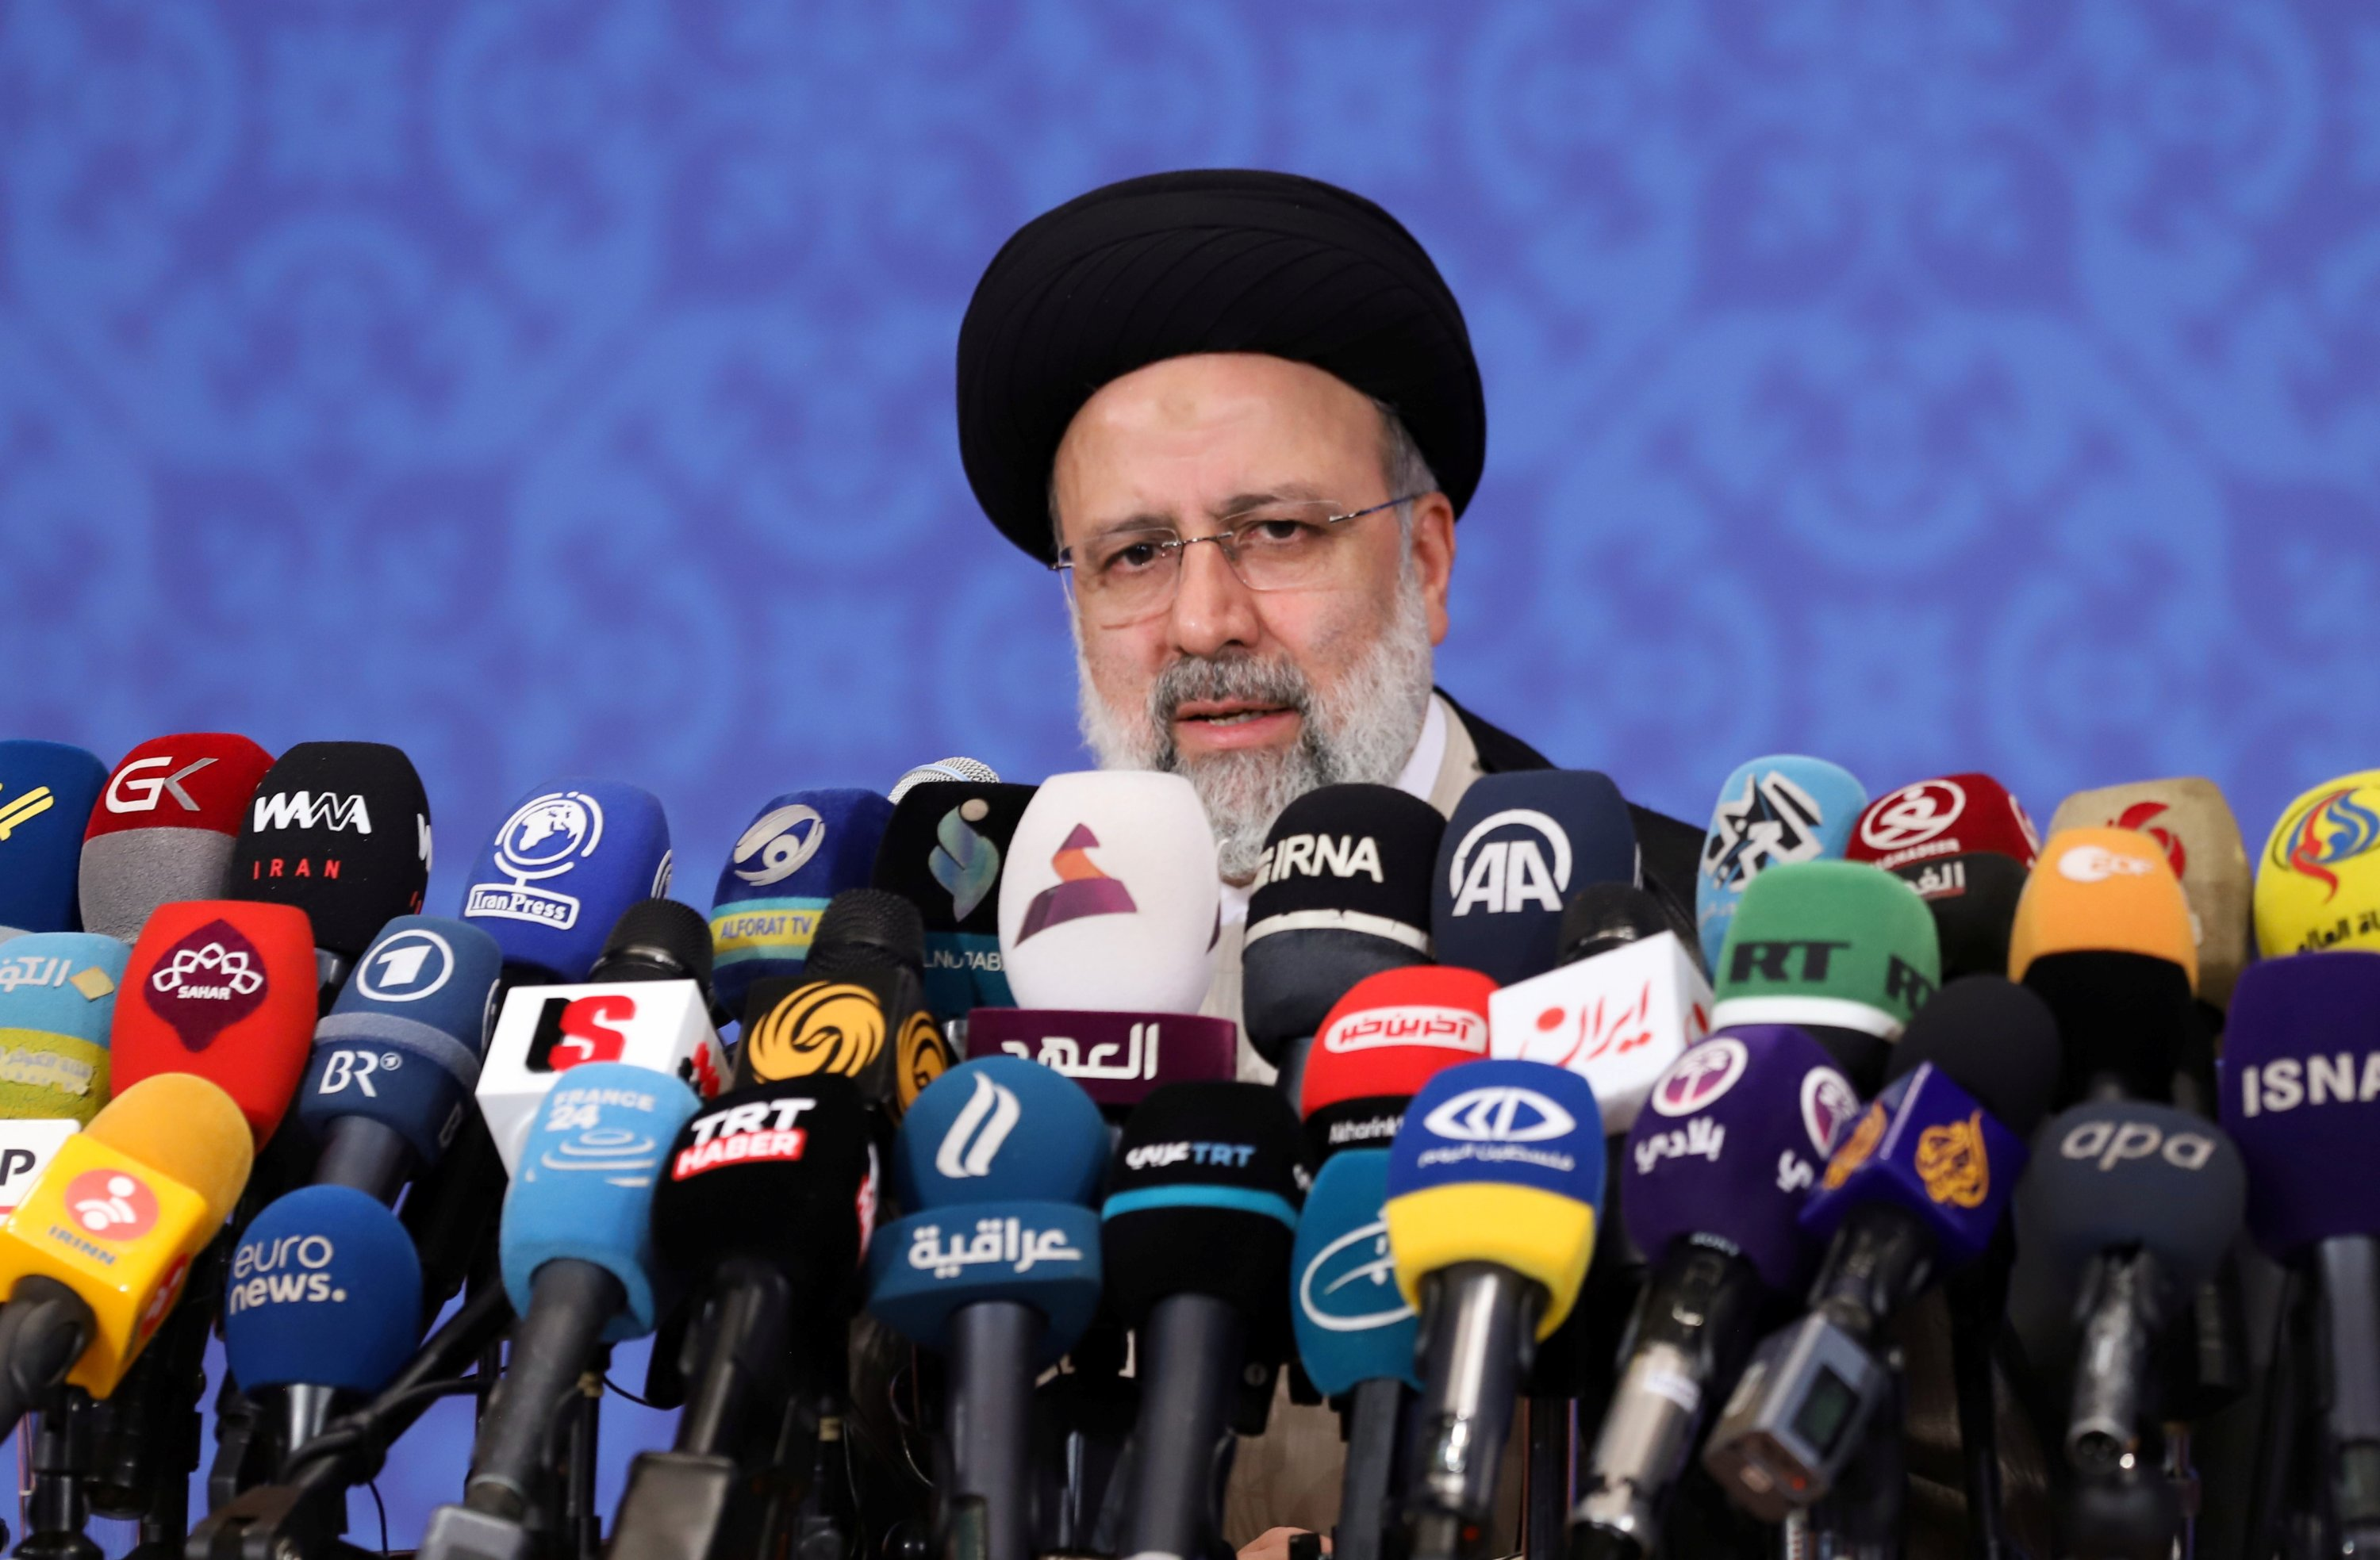 Iran's President-elect Ebrahim Raisi speaks during a news conference in Tehran, Iran, June 21, 2021. (REUTERS Photo)